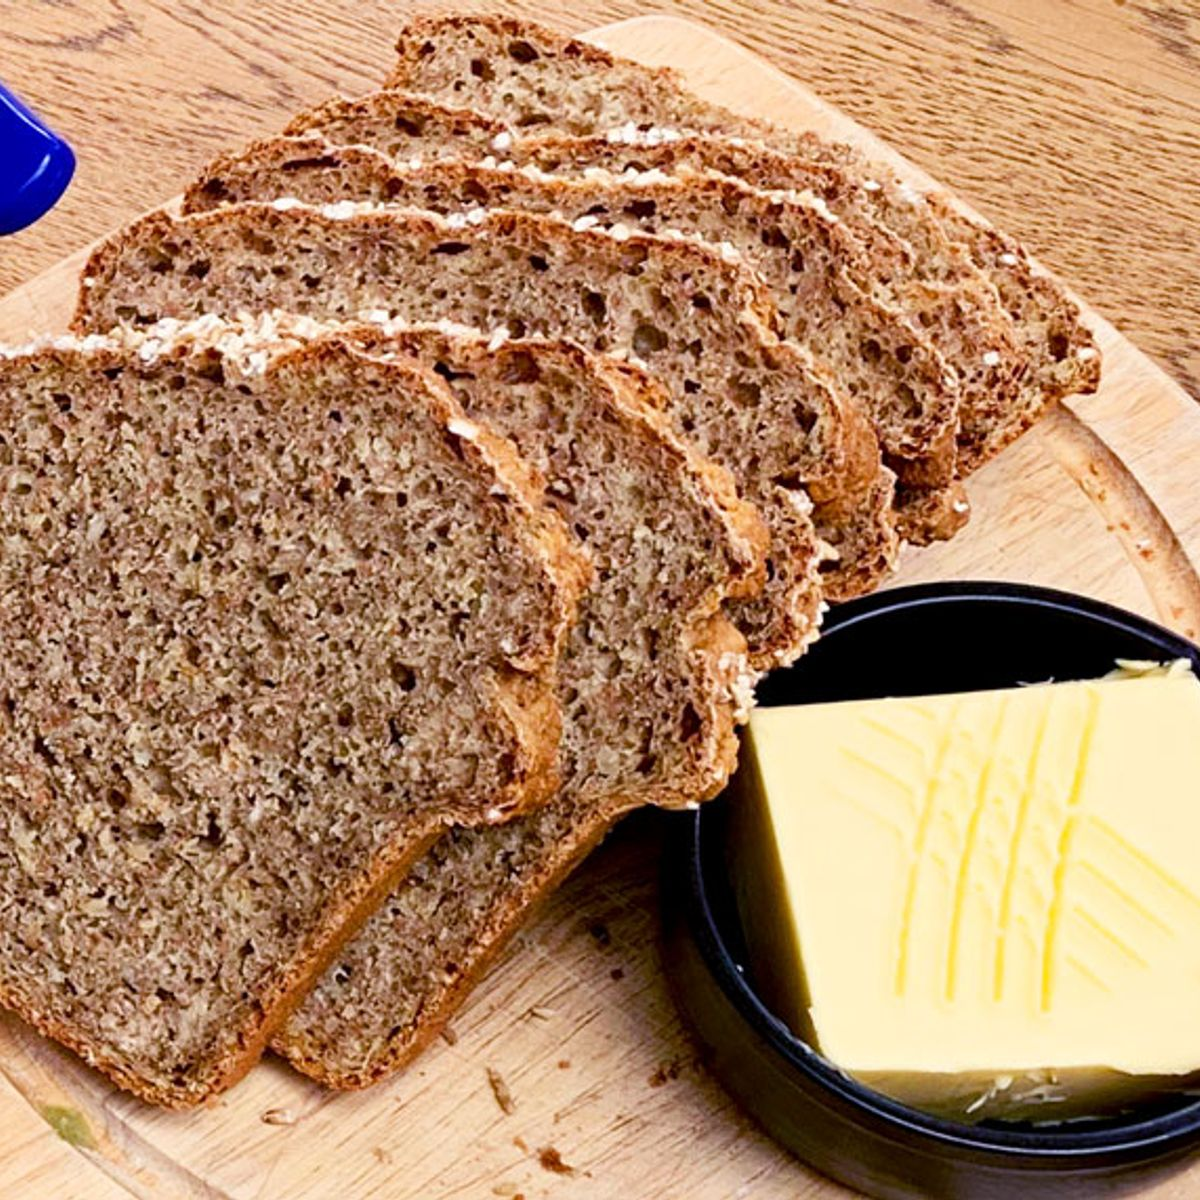 The best Irish brown bread is baked at Clonbrock Castle — here's how to make it